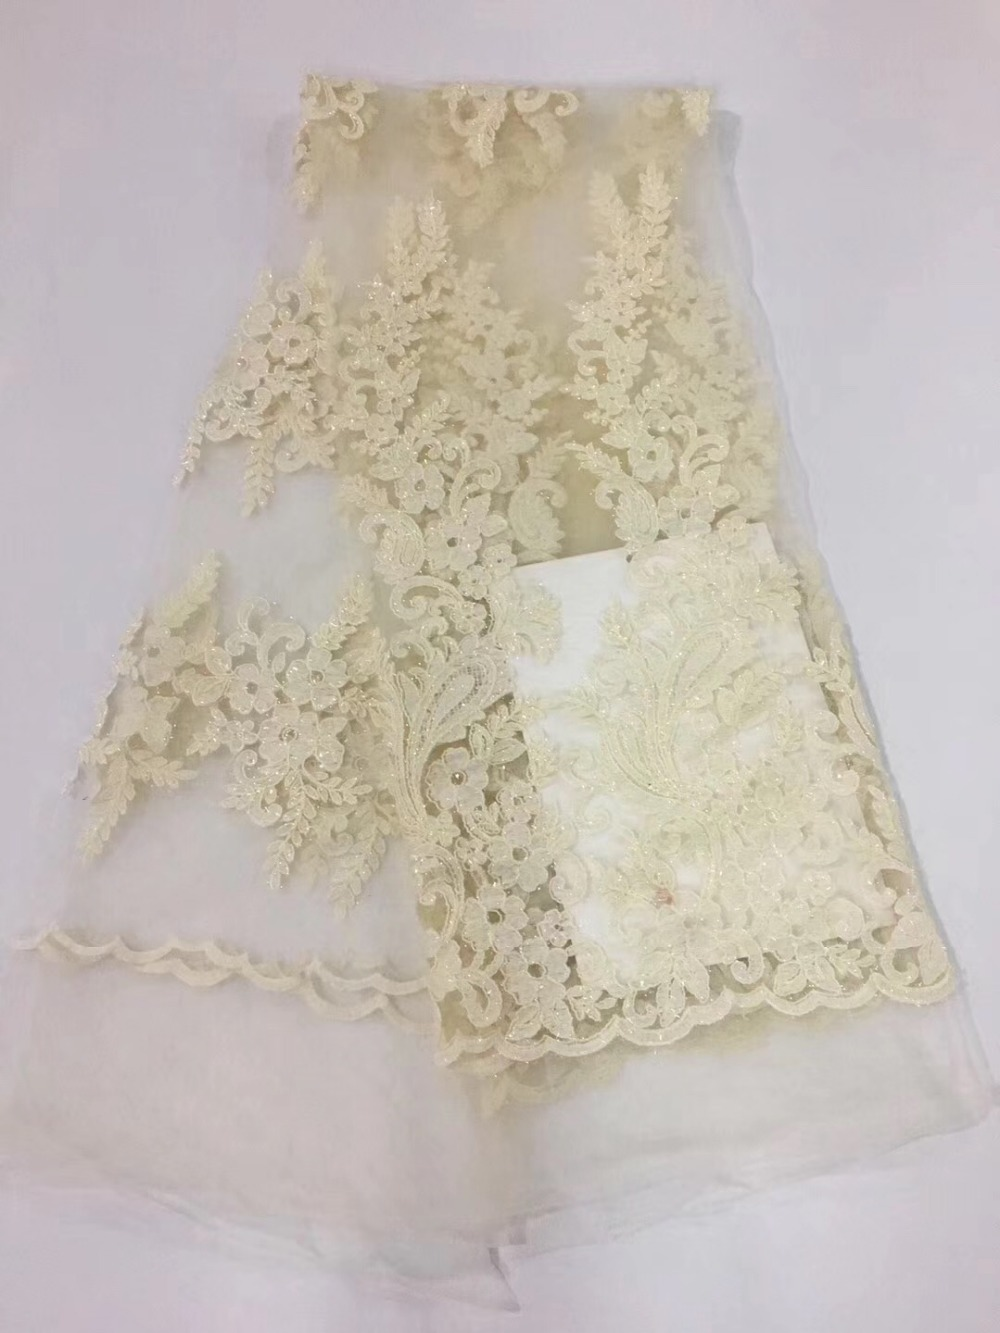 nigerian Tulle French Embroidered Mesh Lace Fabric for wedding/party dress,African white lace fabric,FC7 DP09 5y